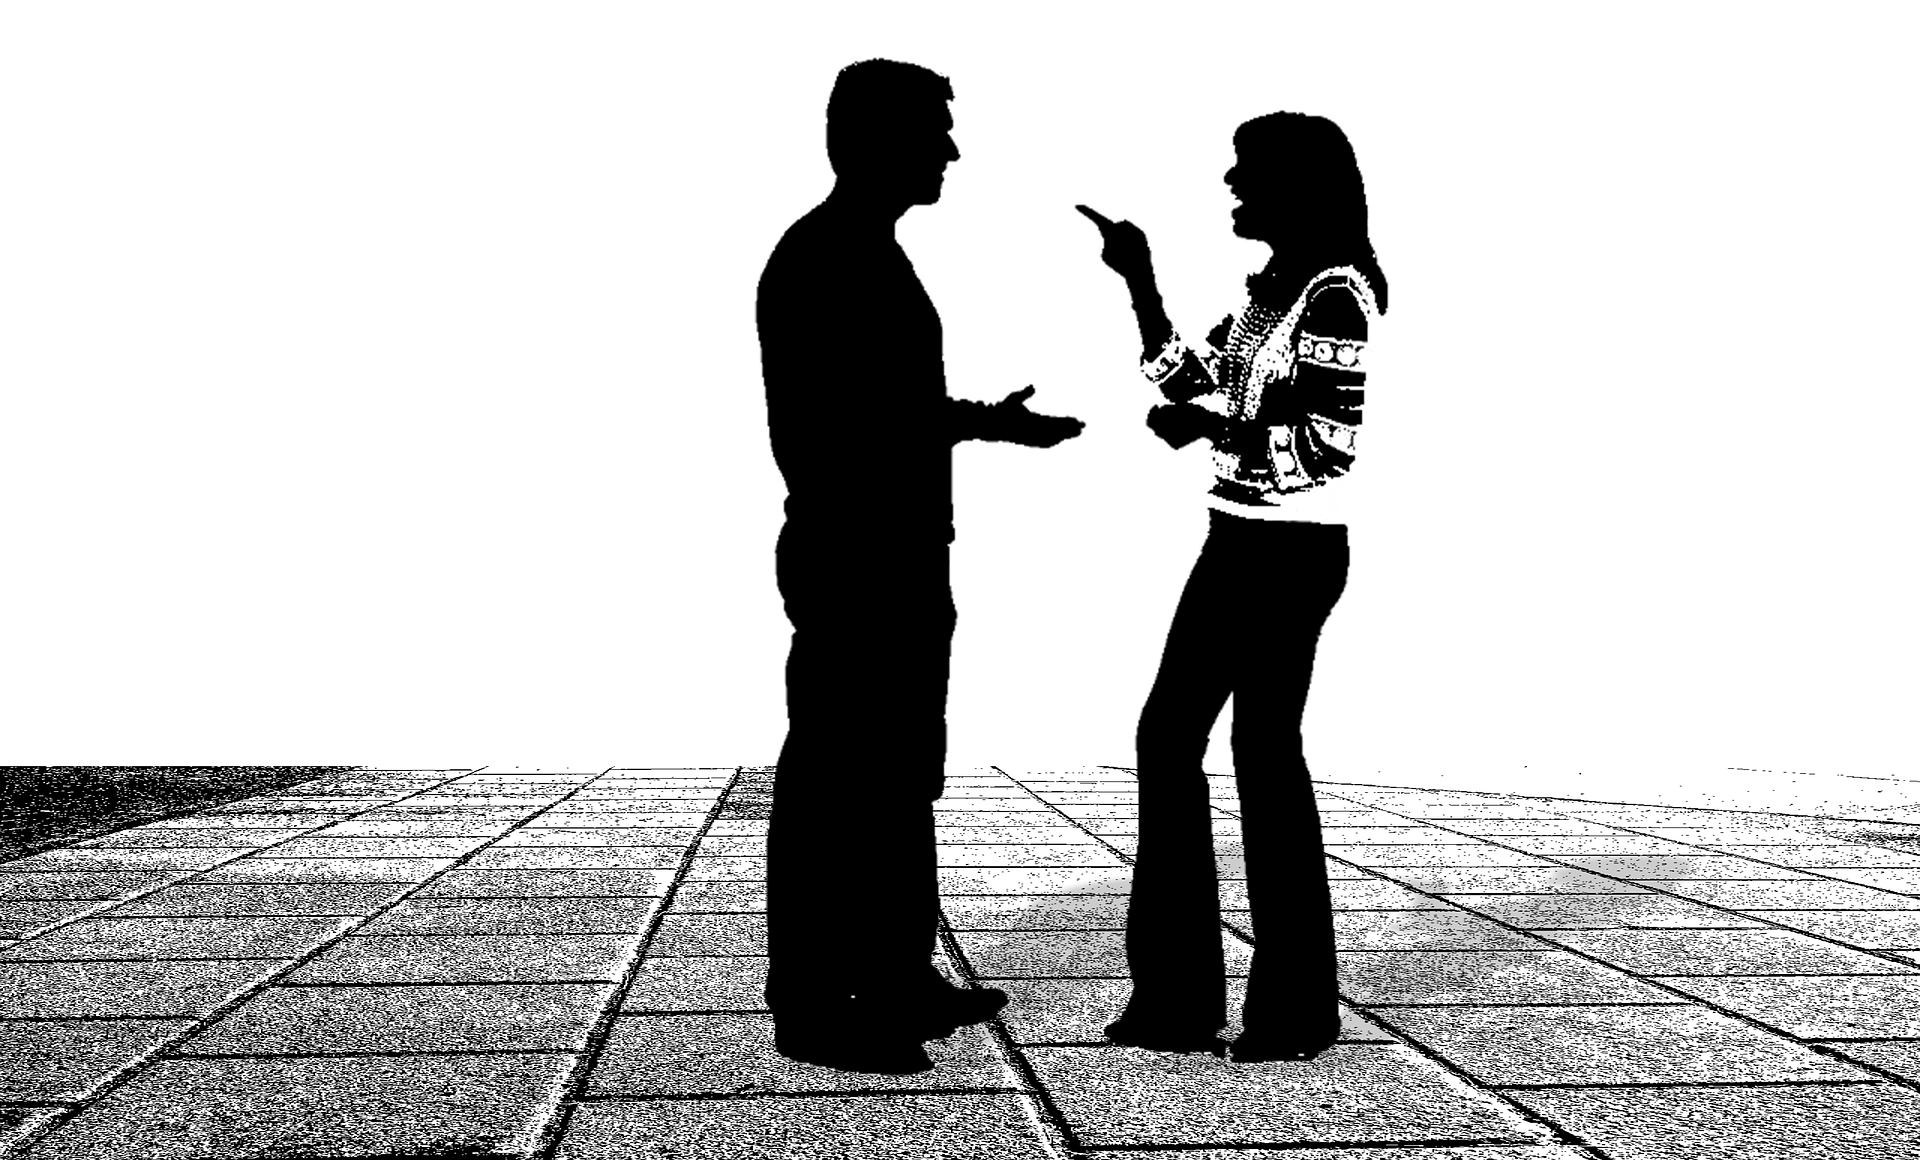 The silhouette of a man and a woman having an argument.